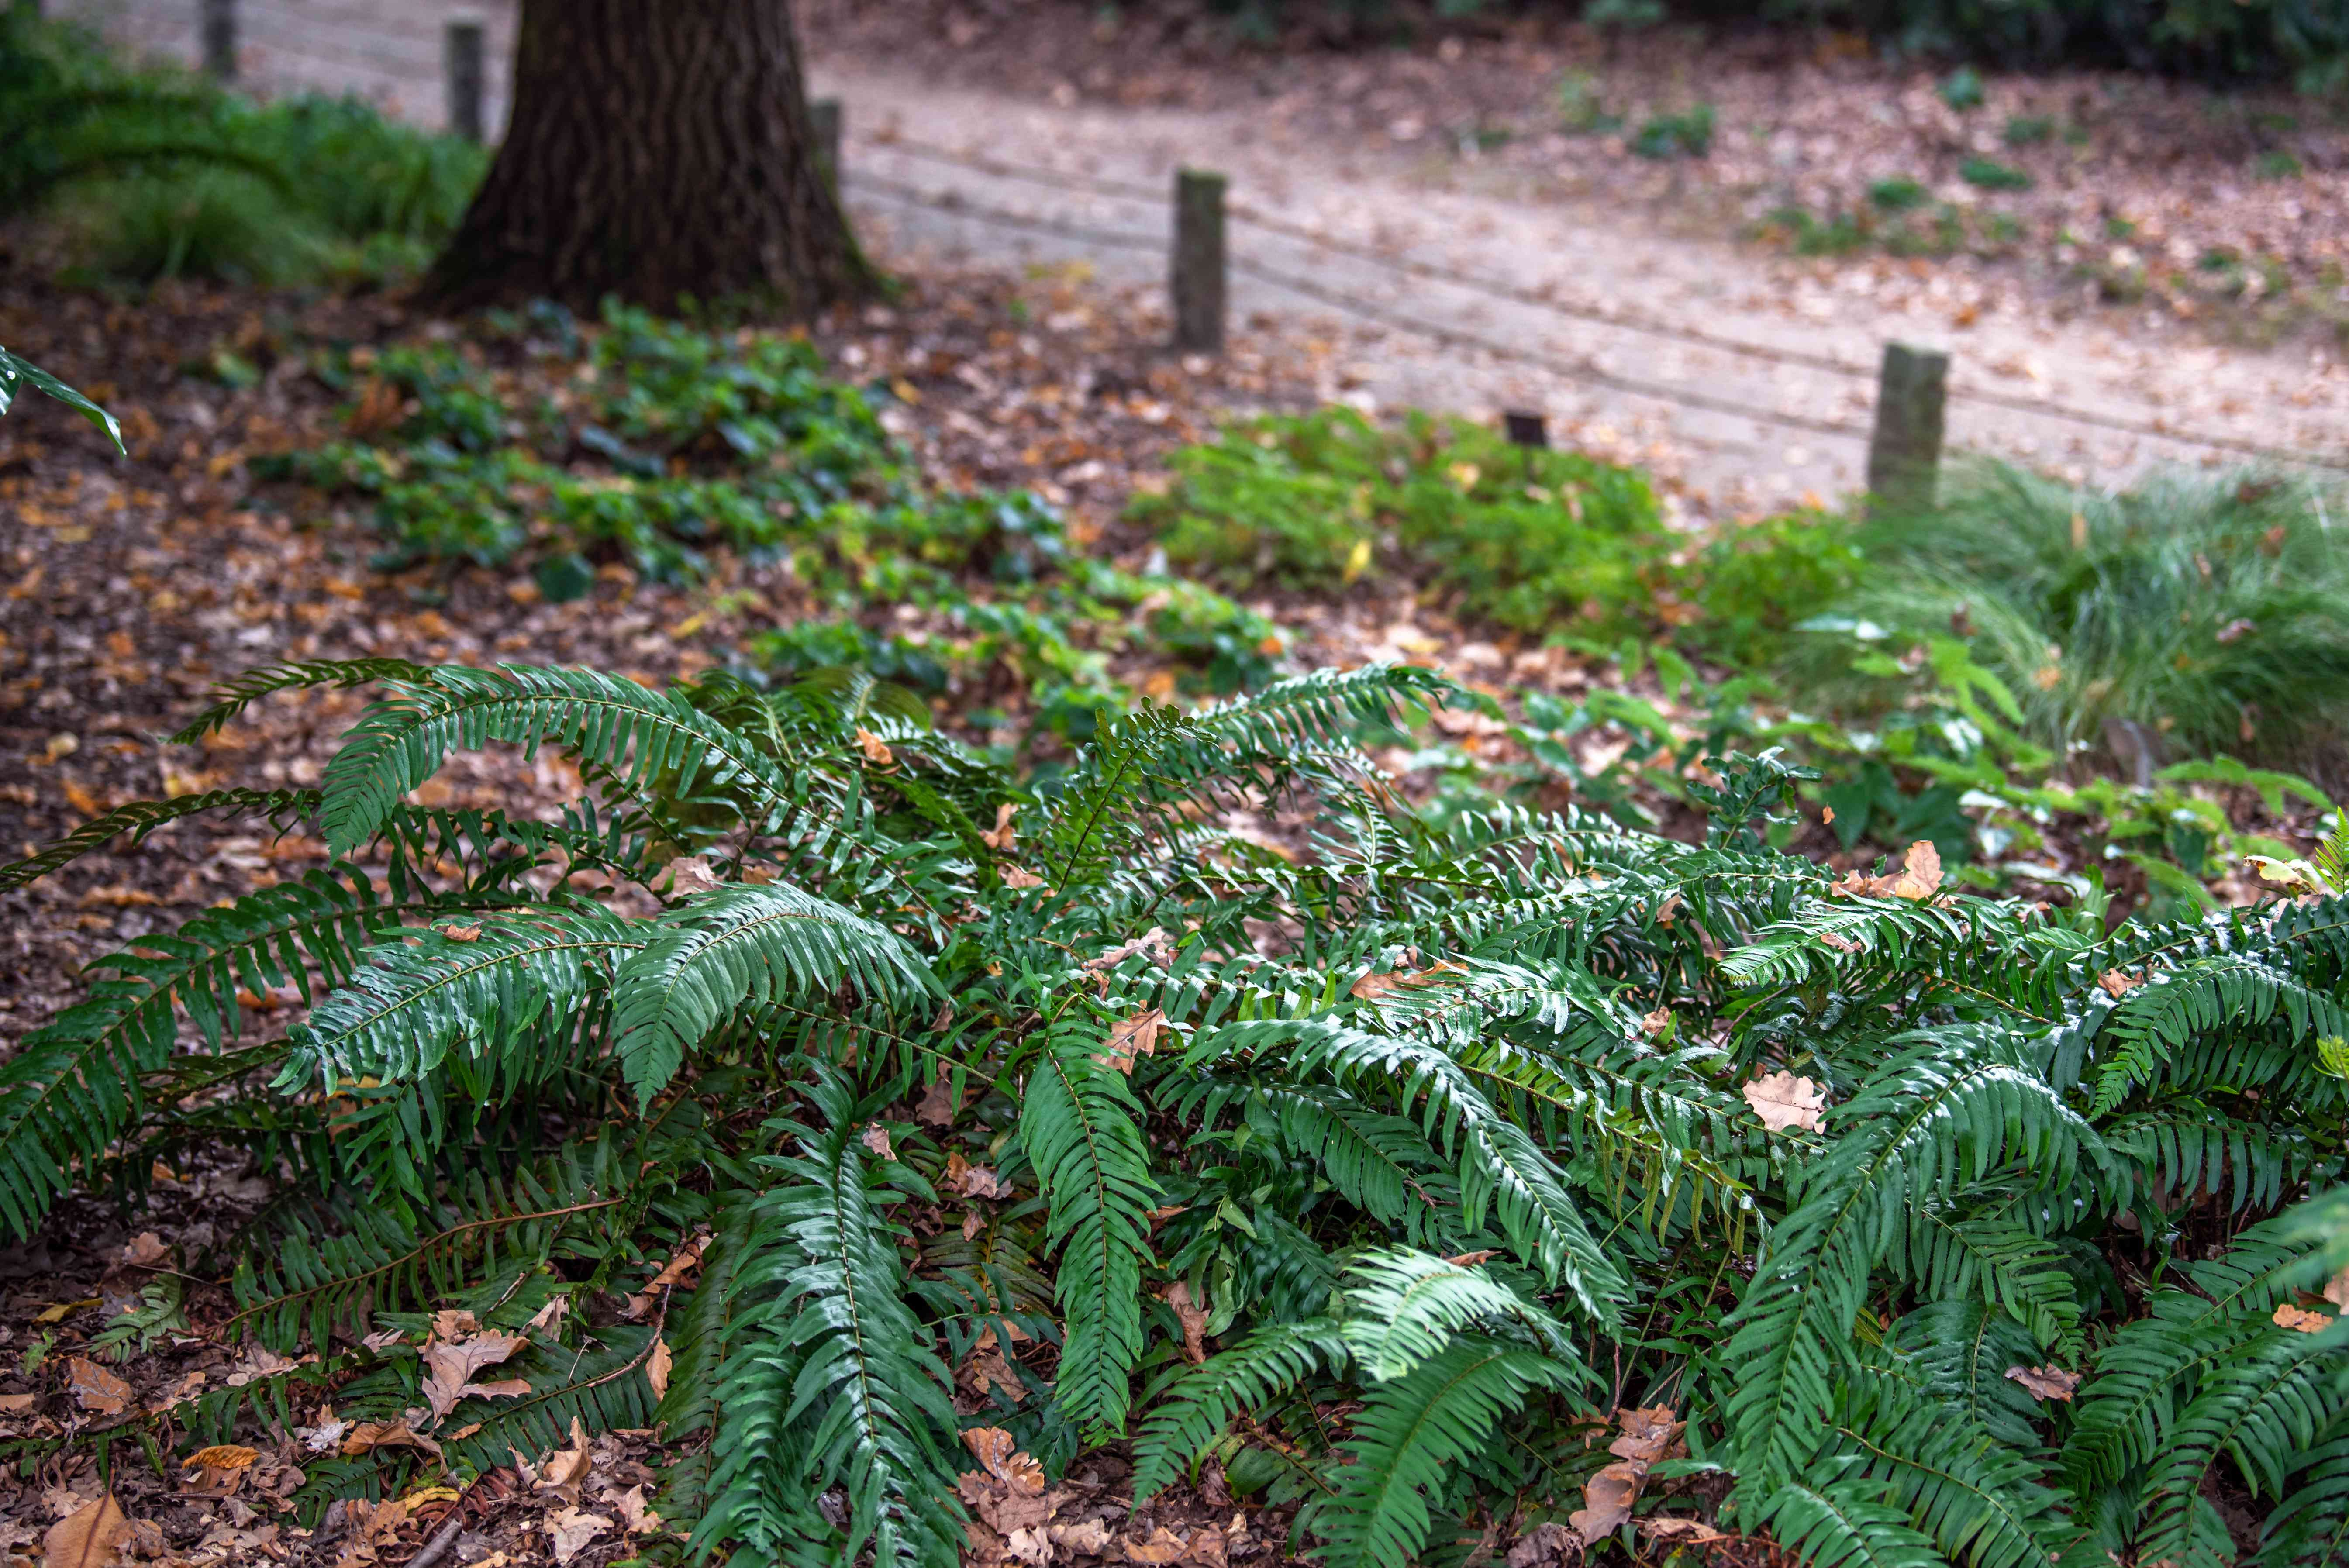 Western sword fern plant growing with long fronds surrounded by dead leaves